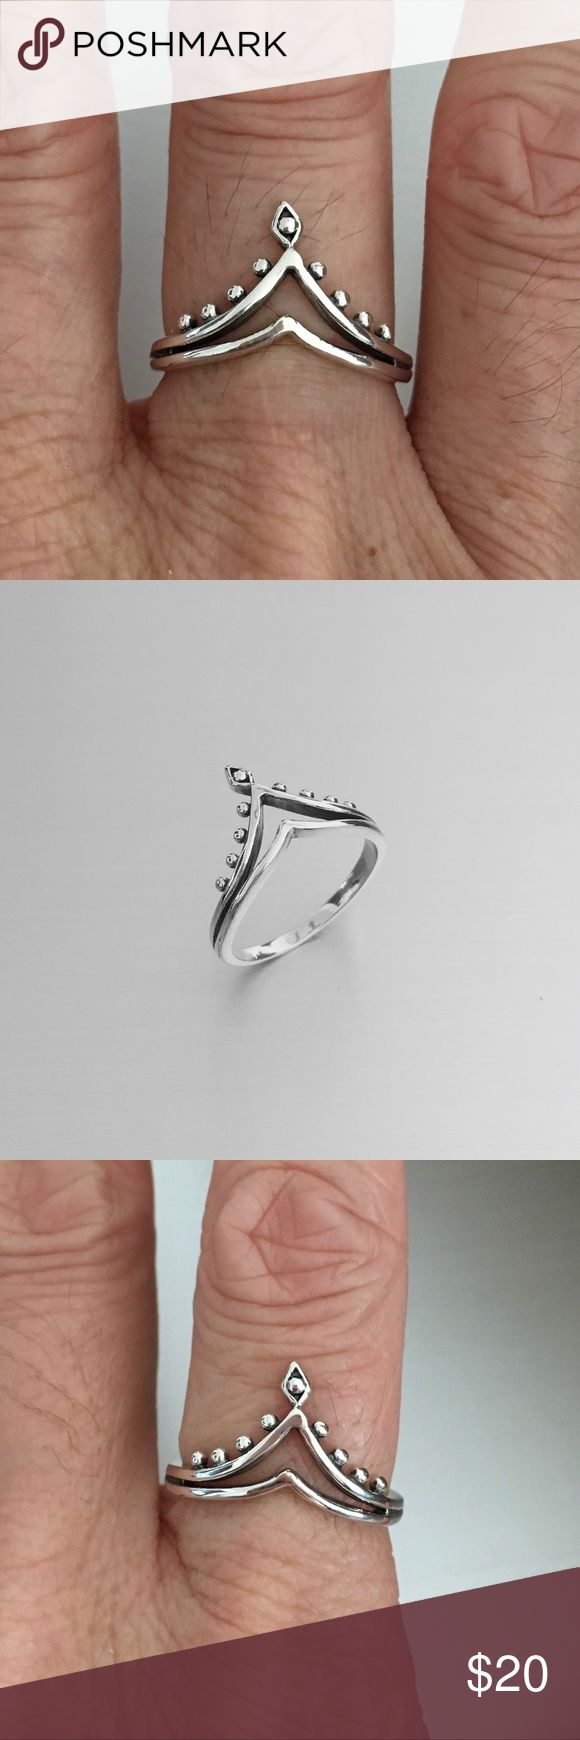 Sterling Silver Double V Shape Ring Sterling Silver Double V Shape Ring, Toe Ring, Midi Ring, Pinky Ring, Index Ring, Thumb Ring, 925 Sterling Silver, Face Height 13 mm Jewelry Rings